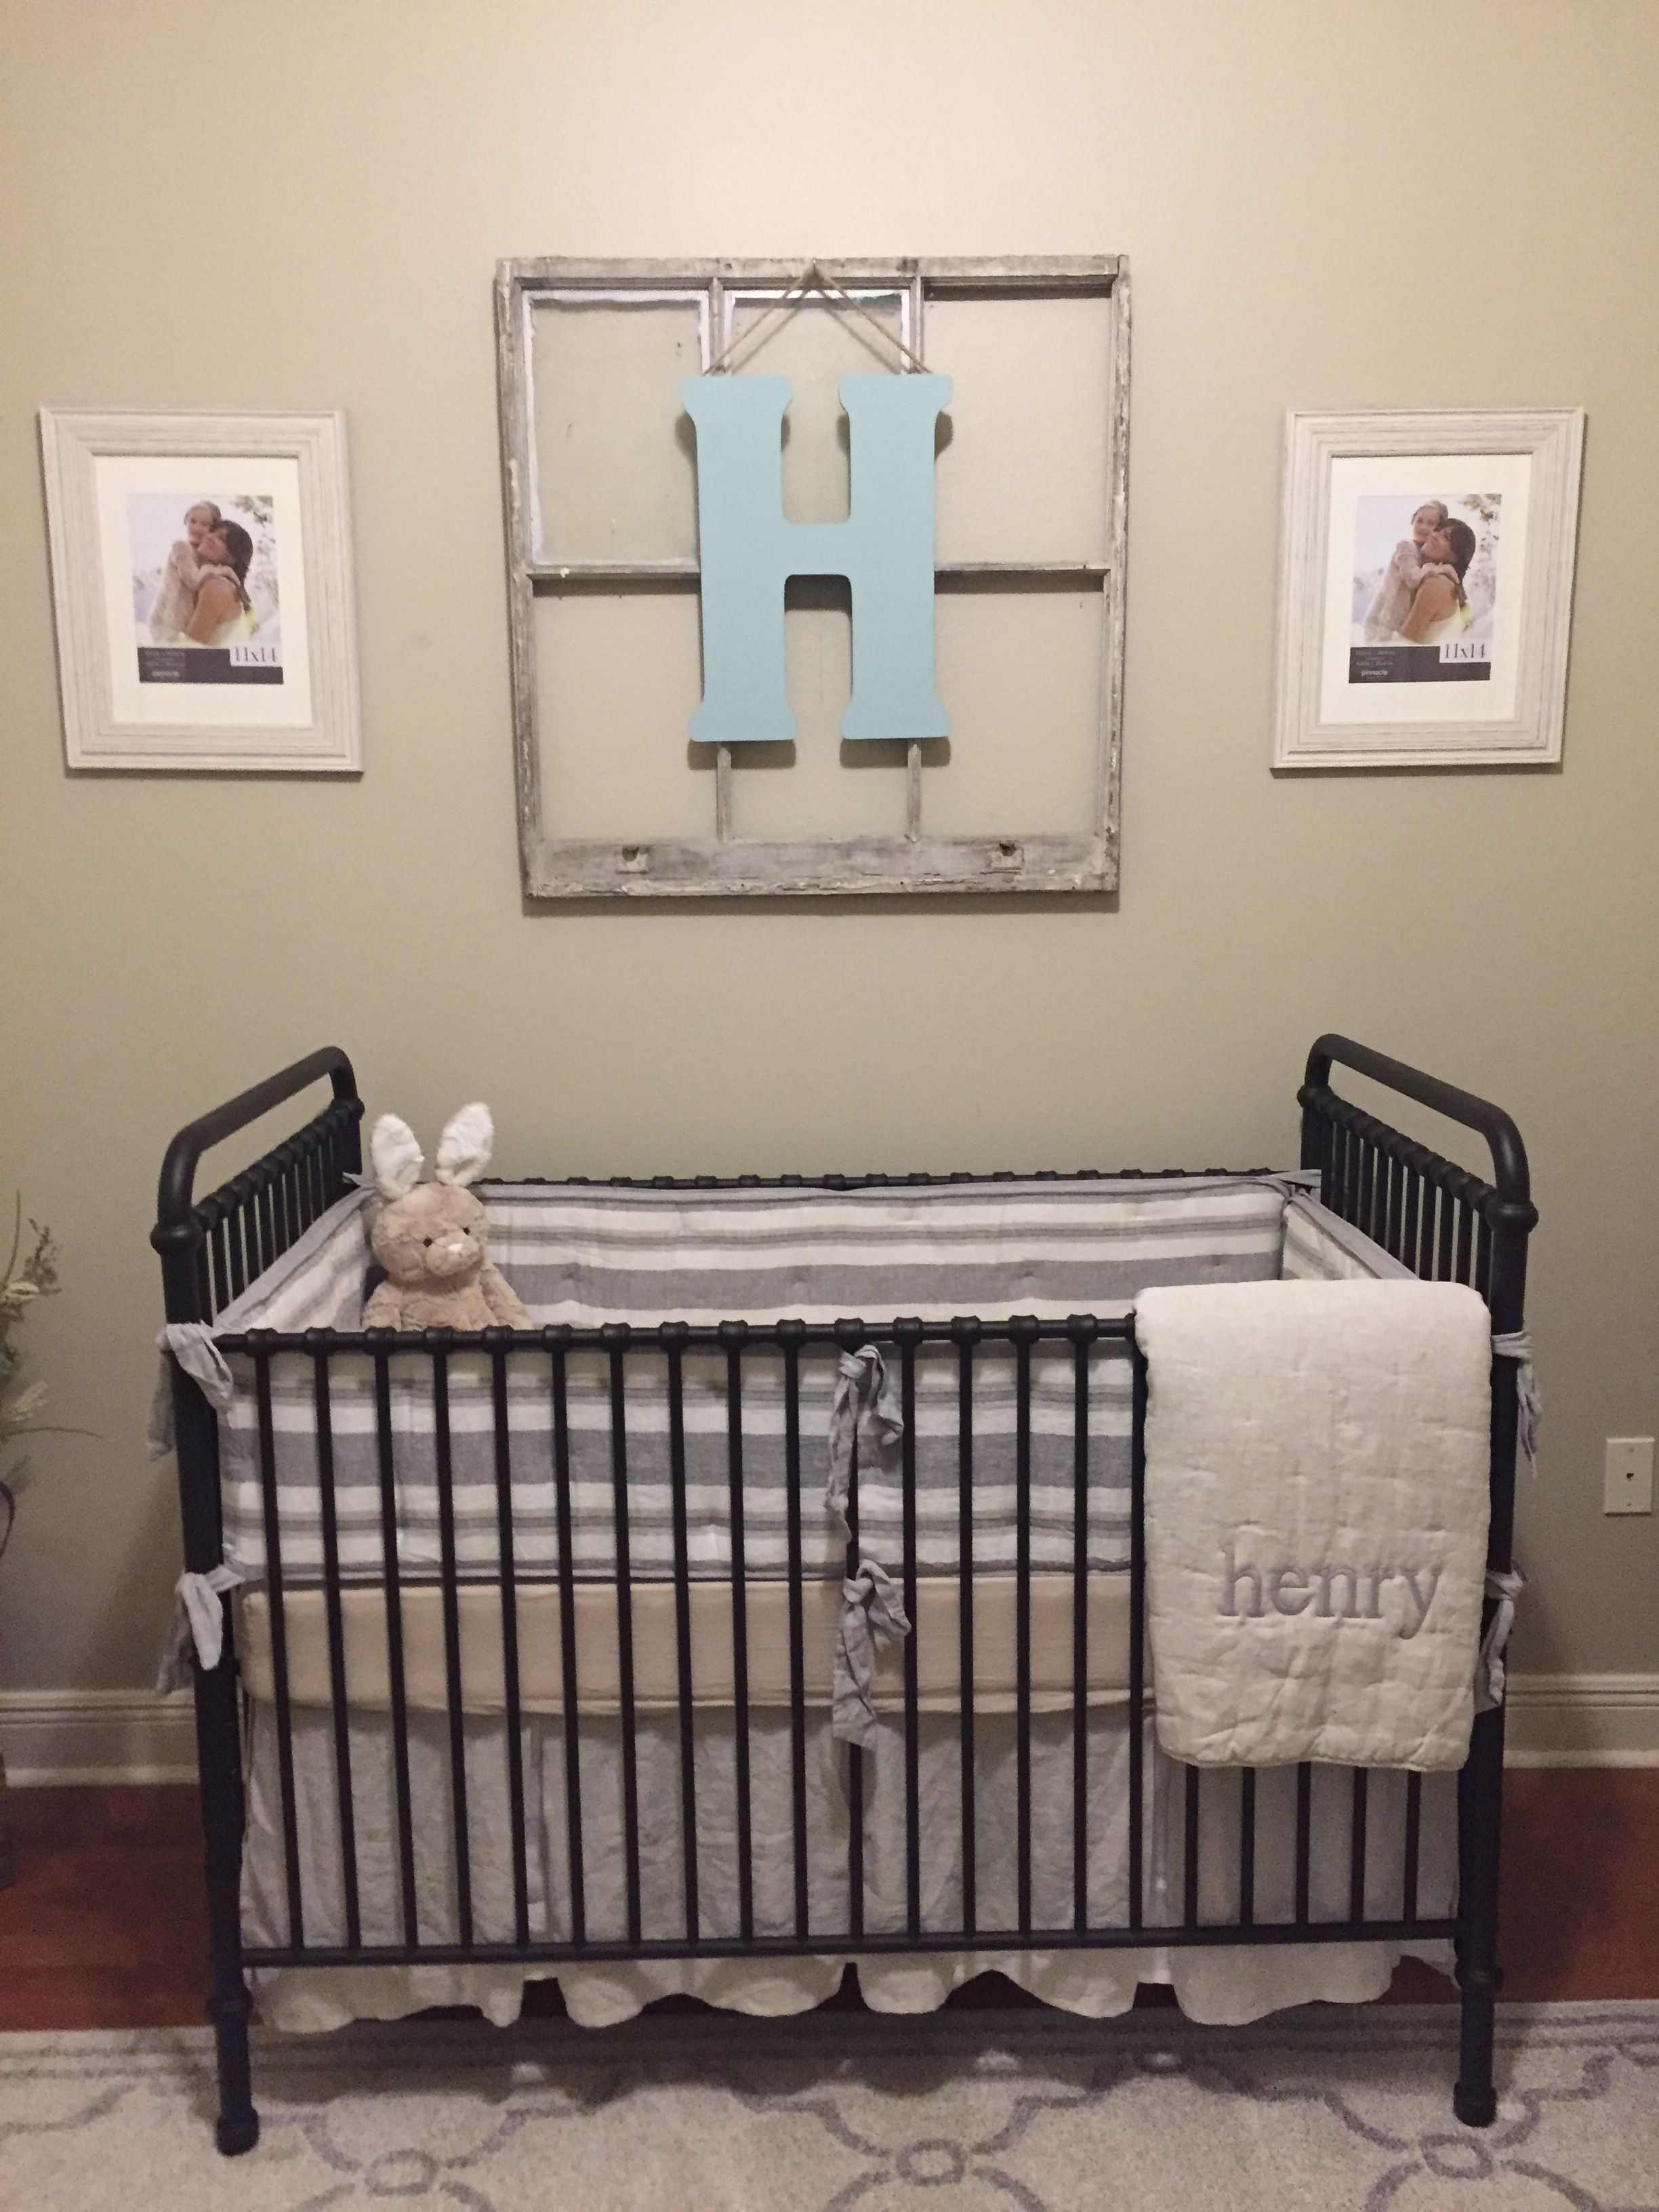 Farmhouse Style Nursery Vintage Nursery Classic Nursery Wrought Iron Crib Repurposed Window With Initi Farmhouse Style Nursery Iron Crib Nursery Iron Crib